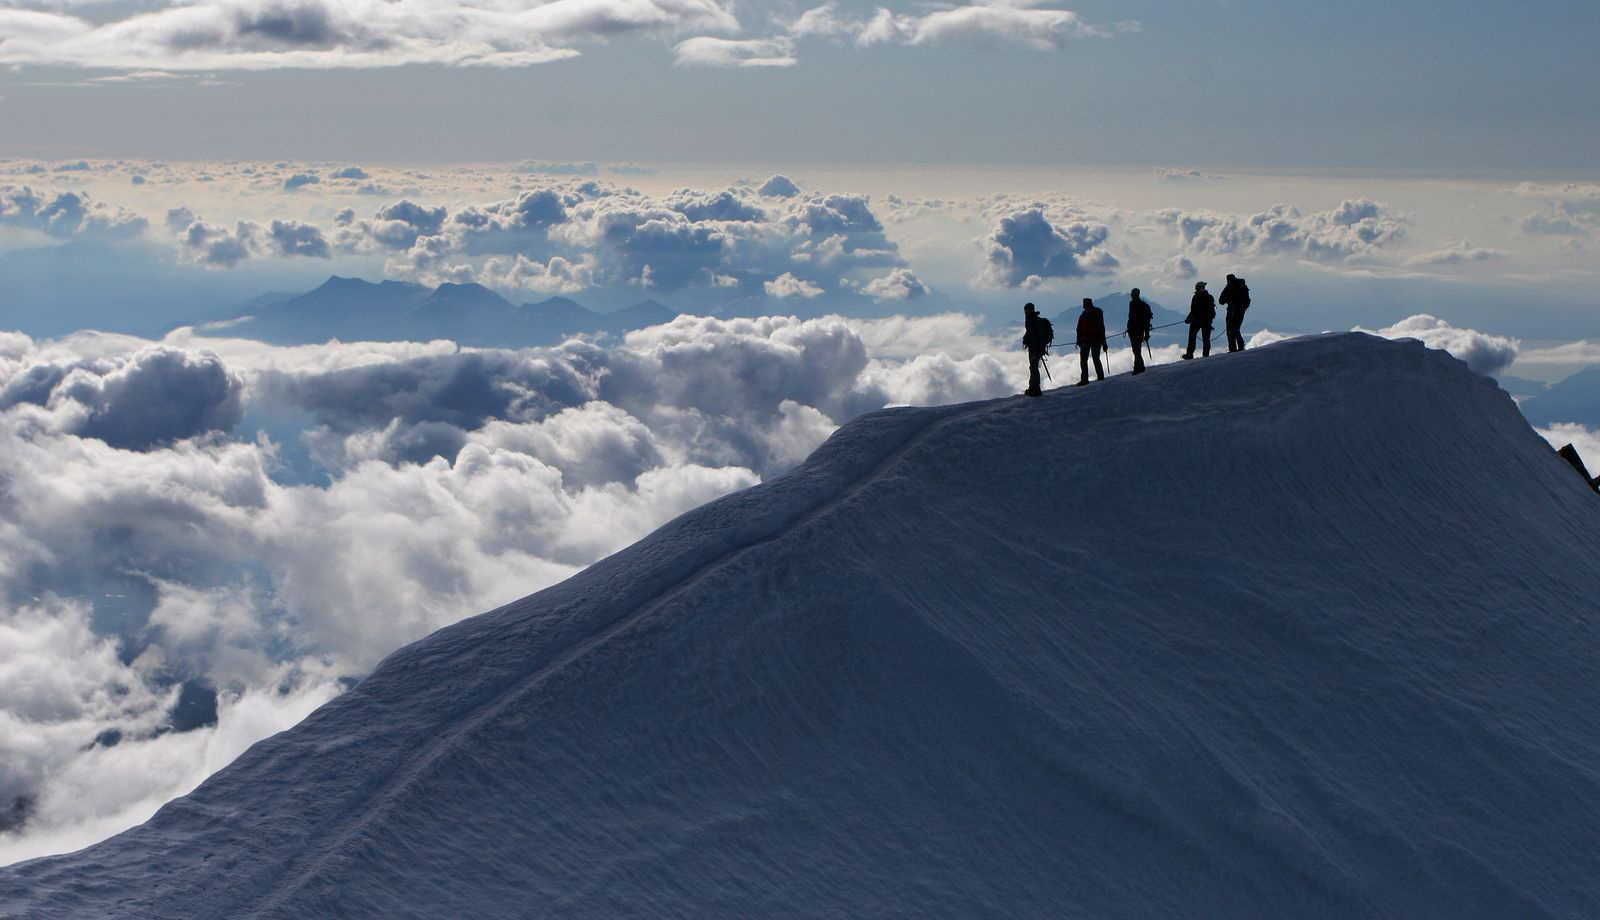 Five mountain climbers on an exposed snow ridge